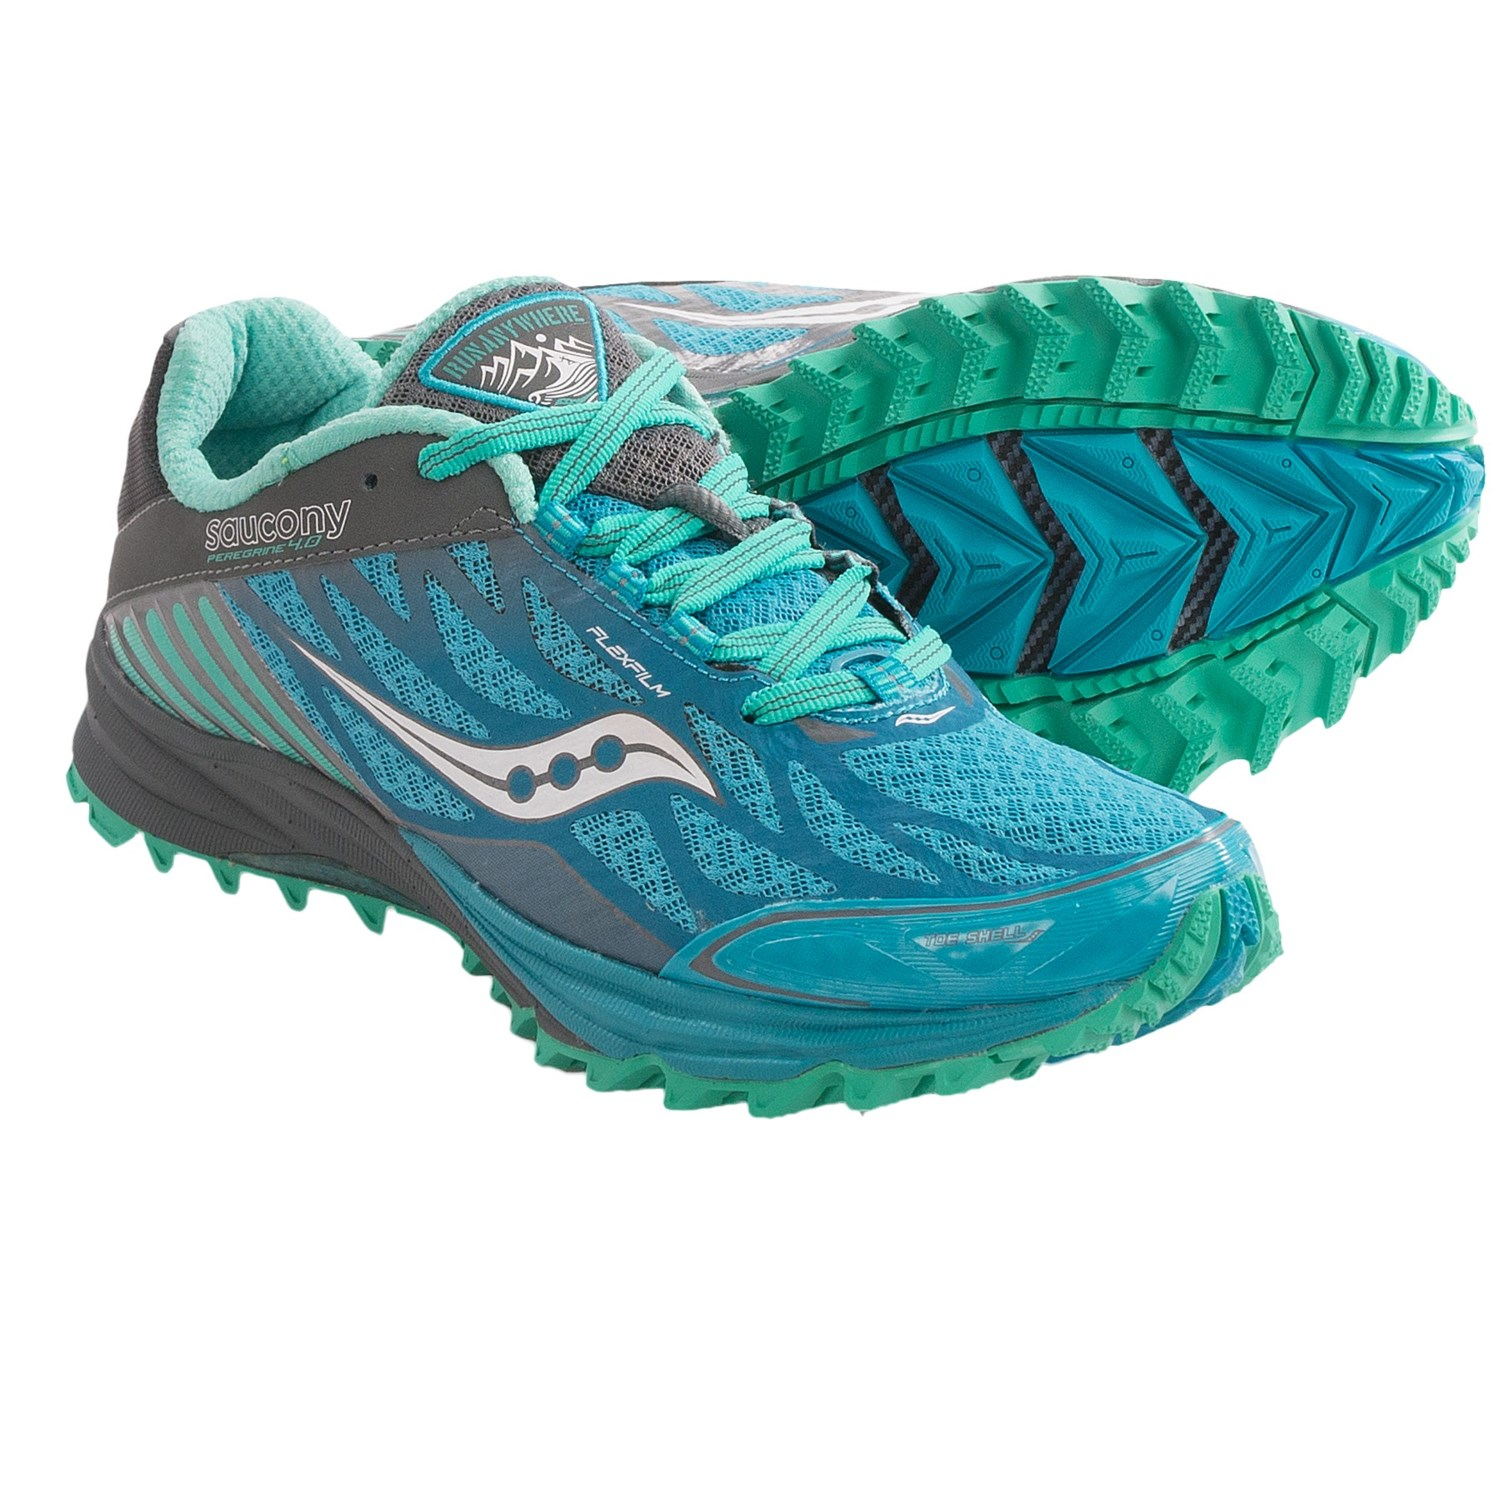 Submit Your Own Image · Saucony Peregrine 4 Trail Running Shoes (For Women